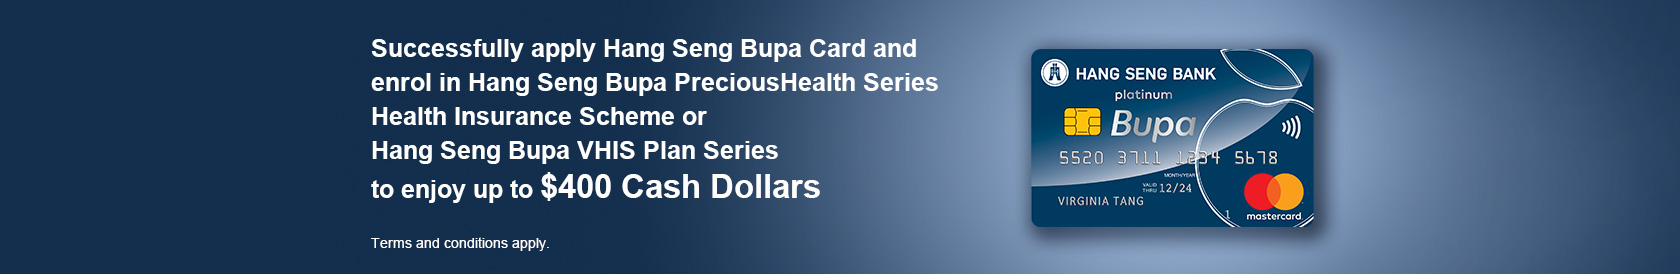 Successfully apply Hang Seng Bupa Card and enrol in Hang Seng Bupa PreciousHealth Series Health Insurance Scheme to enjoy up to $400 Cash Dollars Terms and conditions apply.